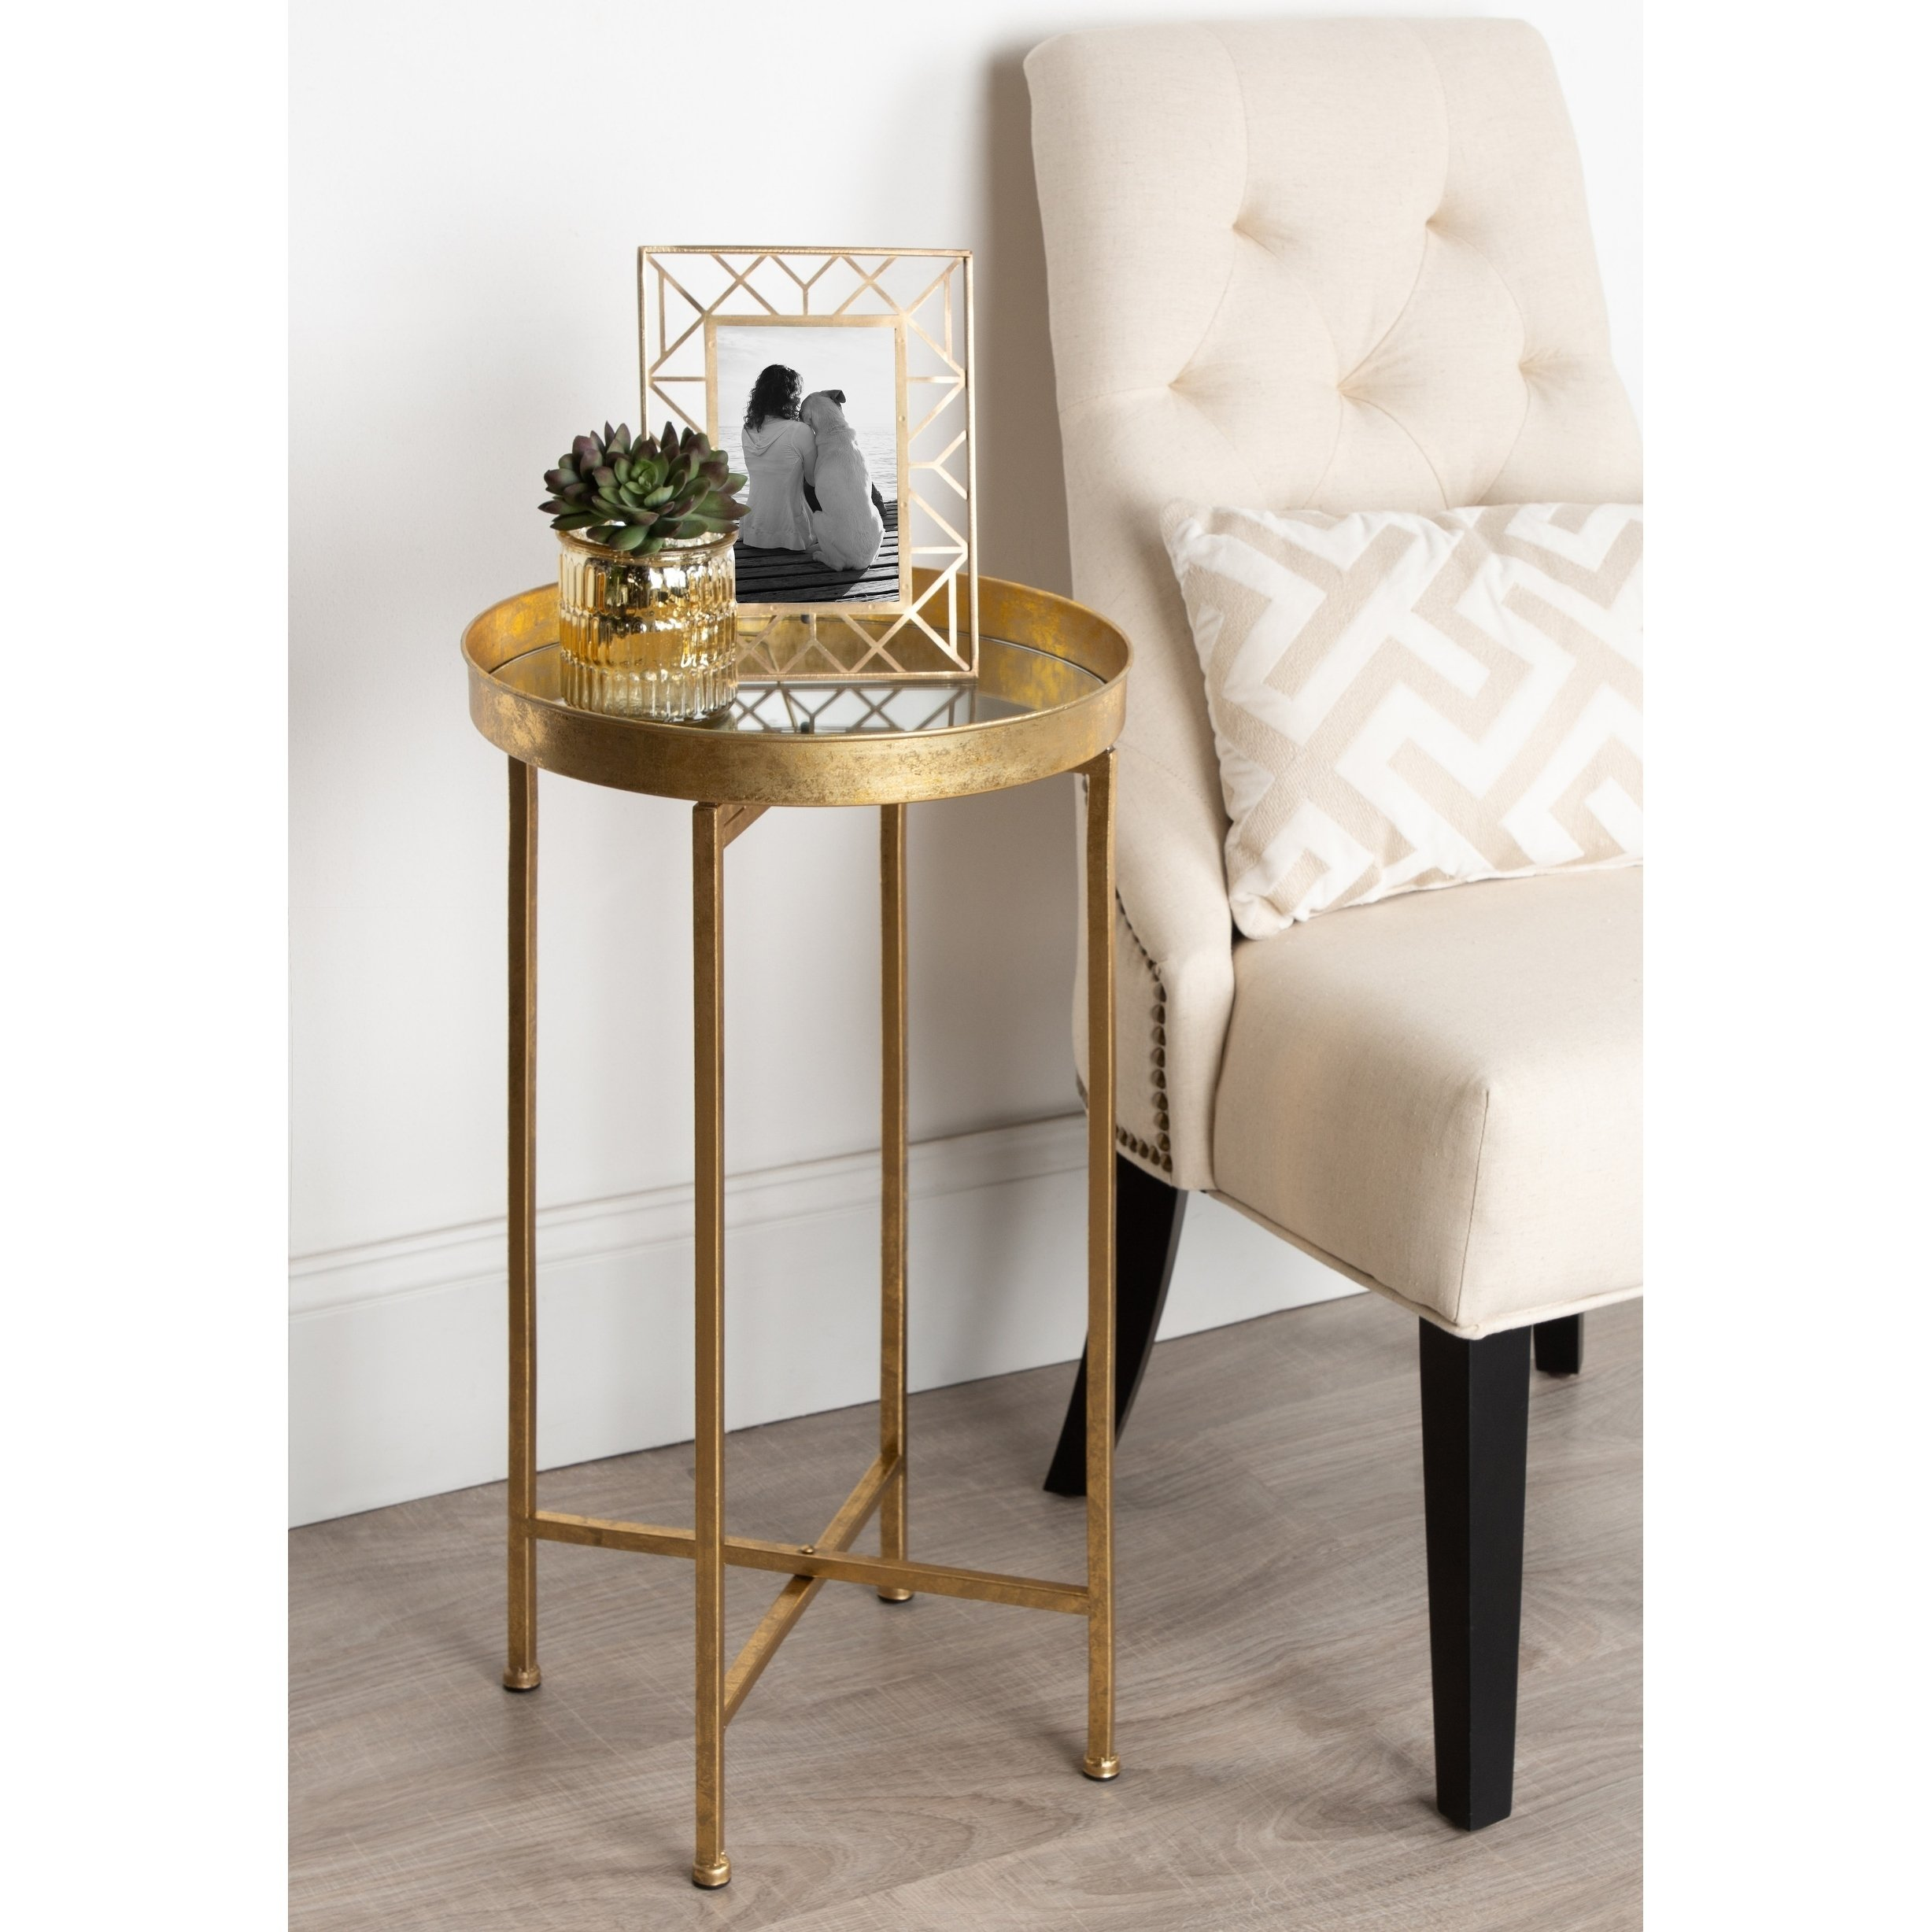 kate and laurel celia round metal foldable tray accent table cardboard free shipping today ballard designs outdoor cushions three legged retro console tall nightstand lamps